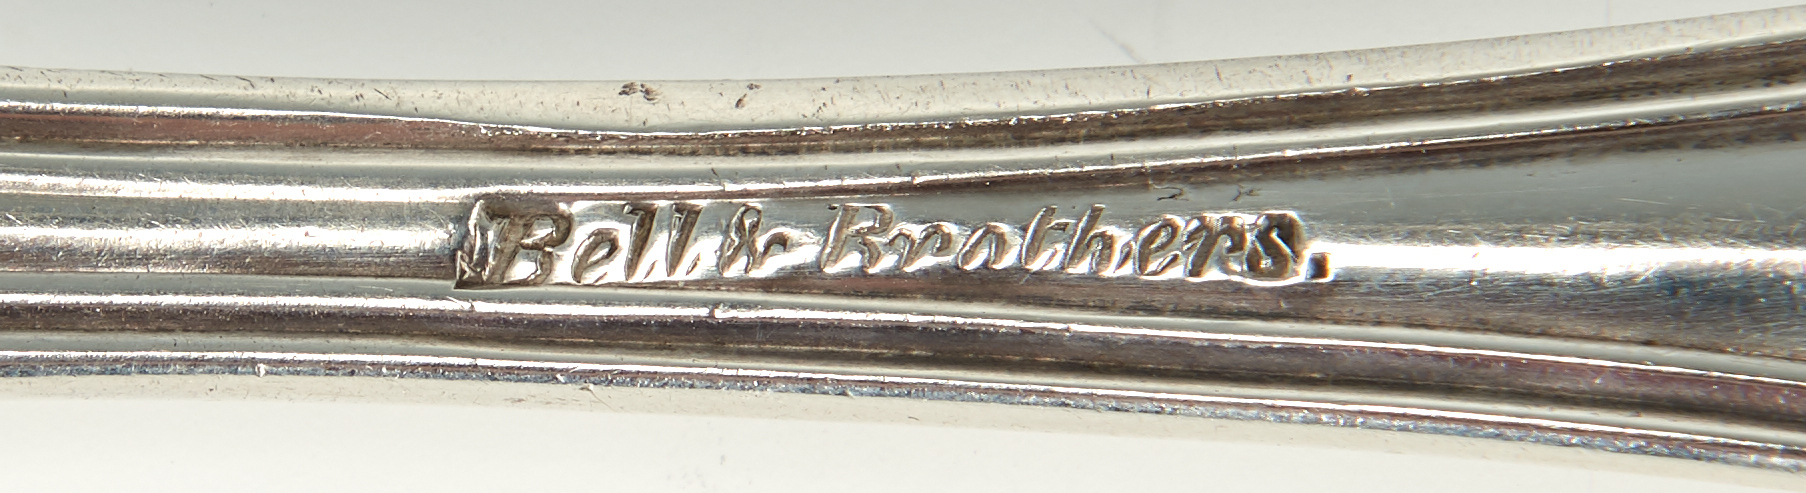 Lot 75: Two Coin Silver Forks, Bell & Bros. TX